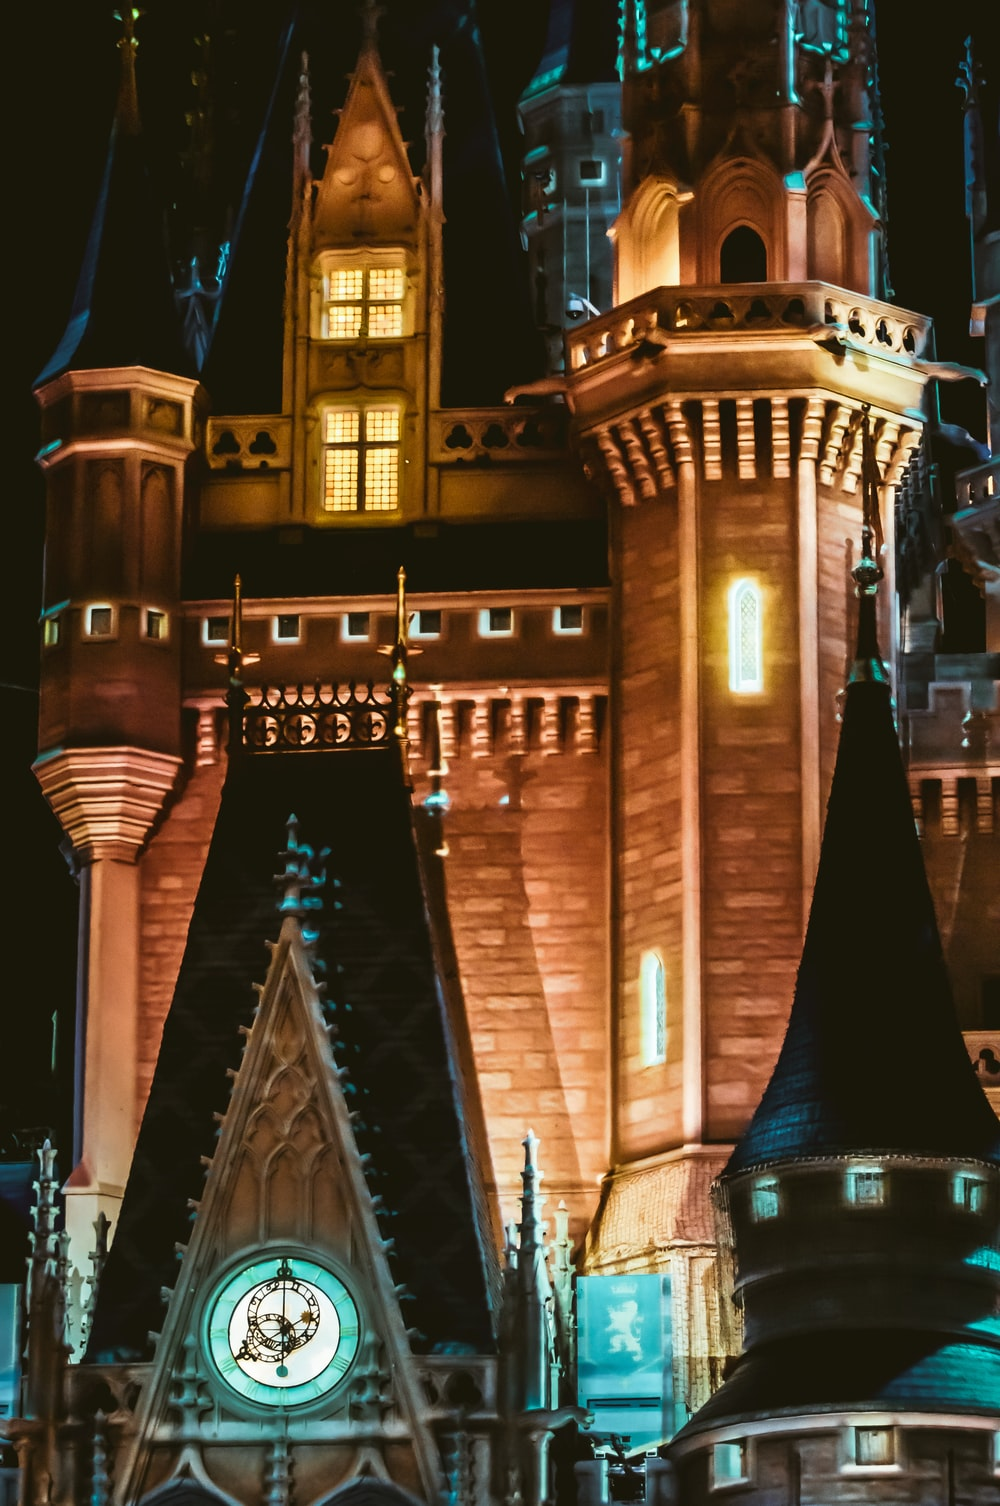 brown and black castle during night time